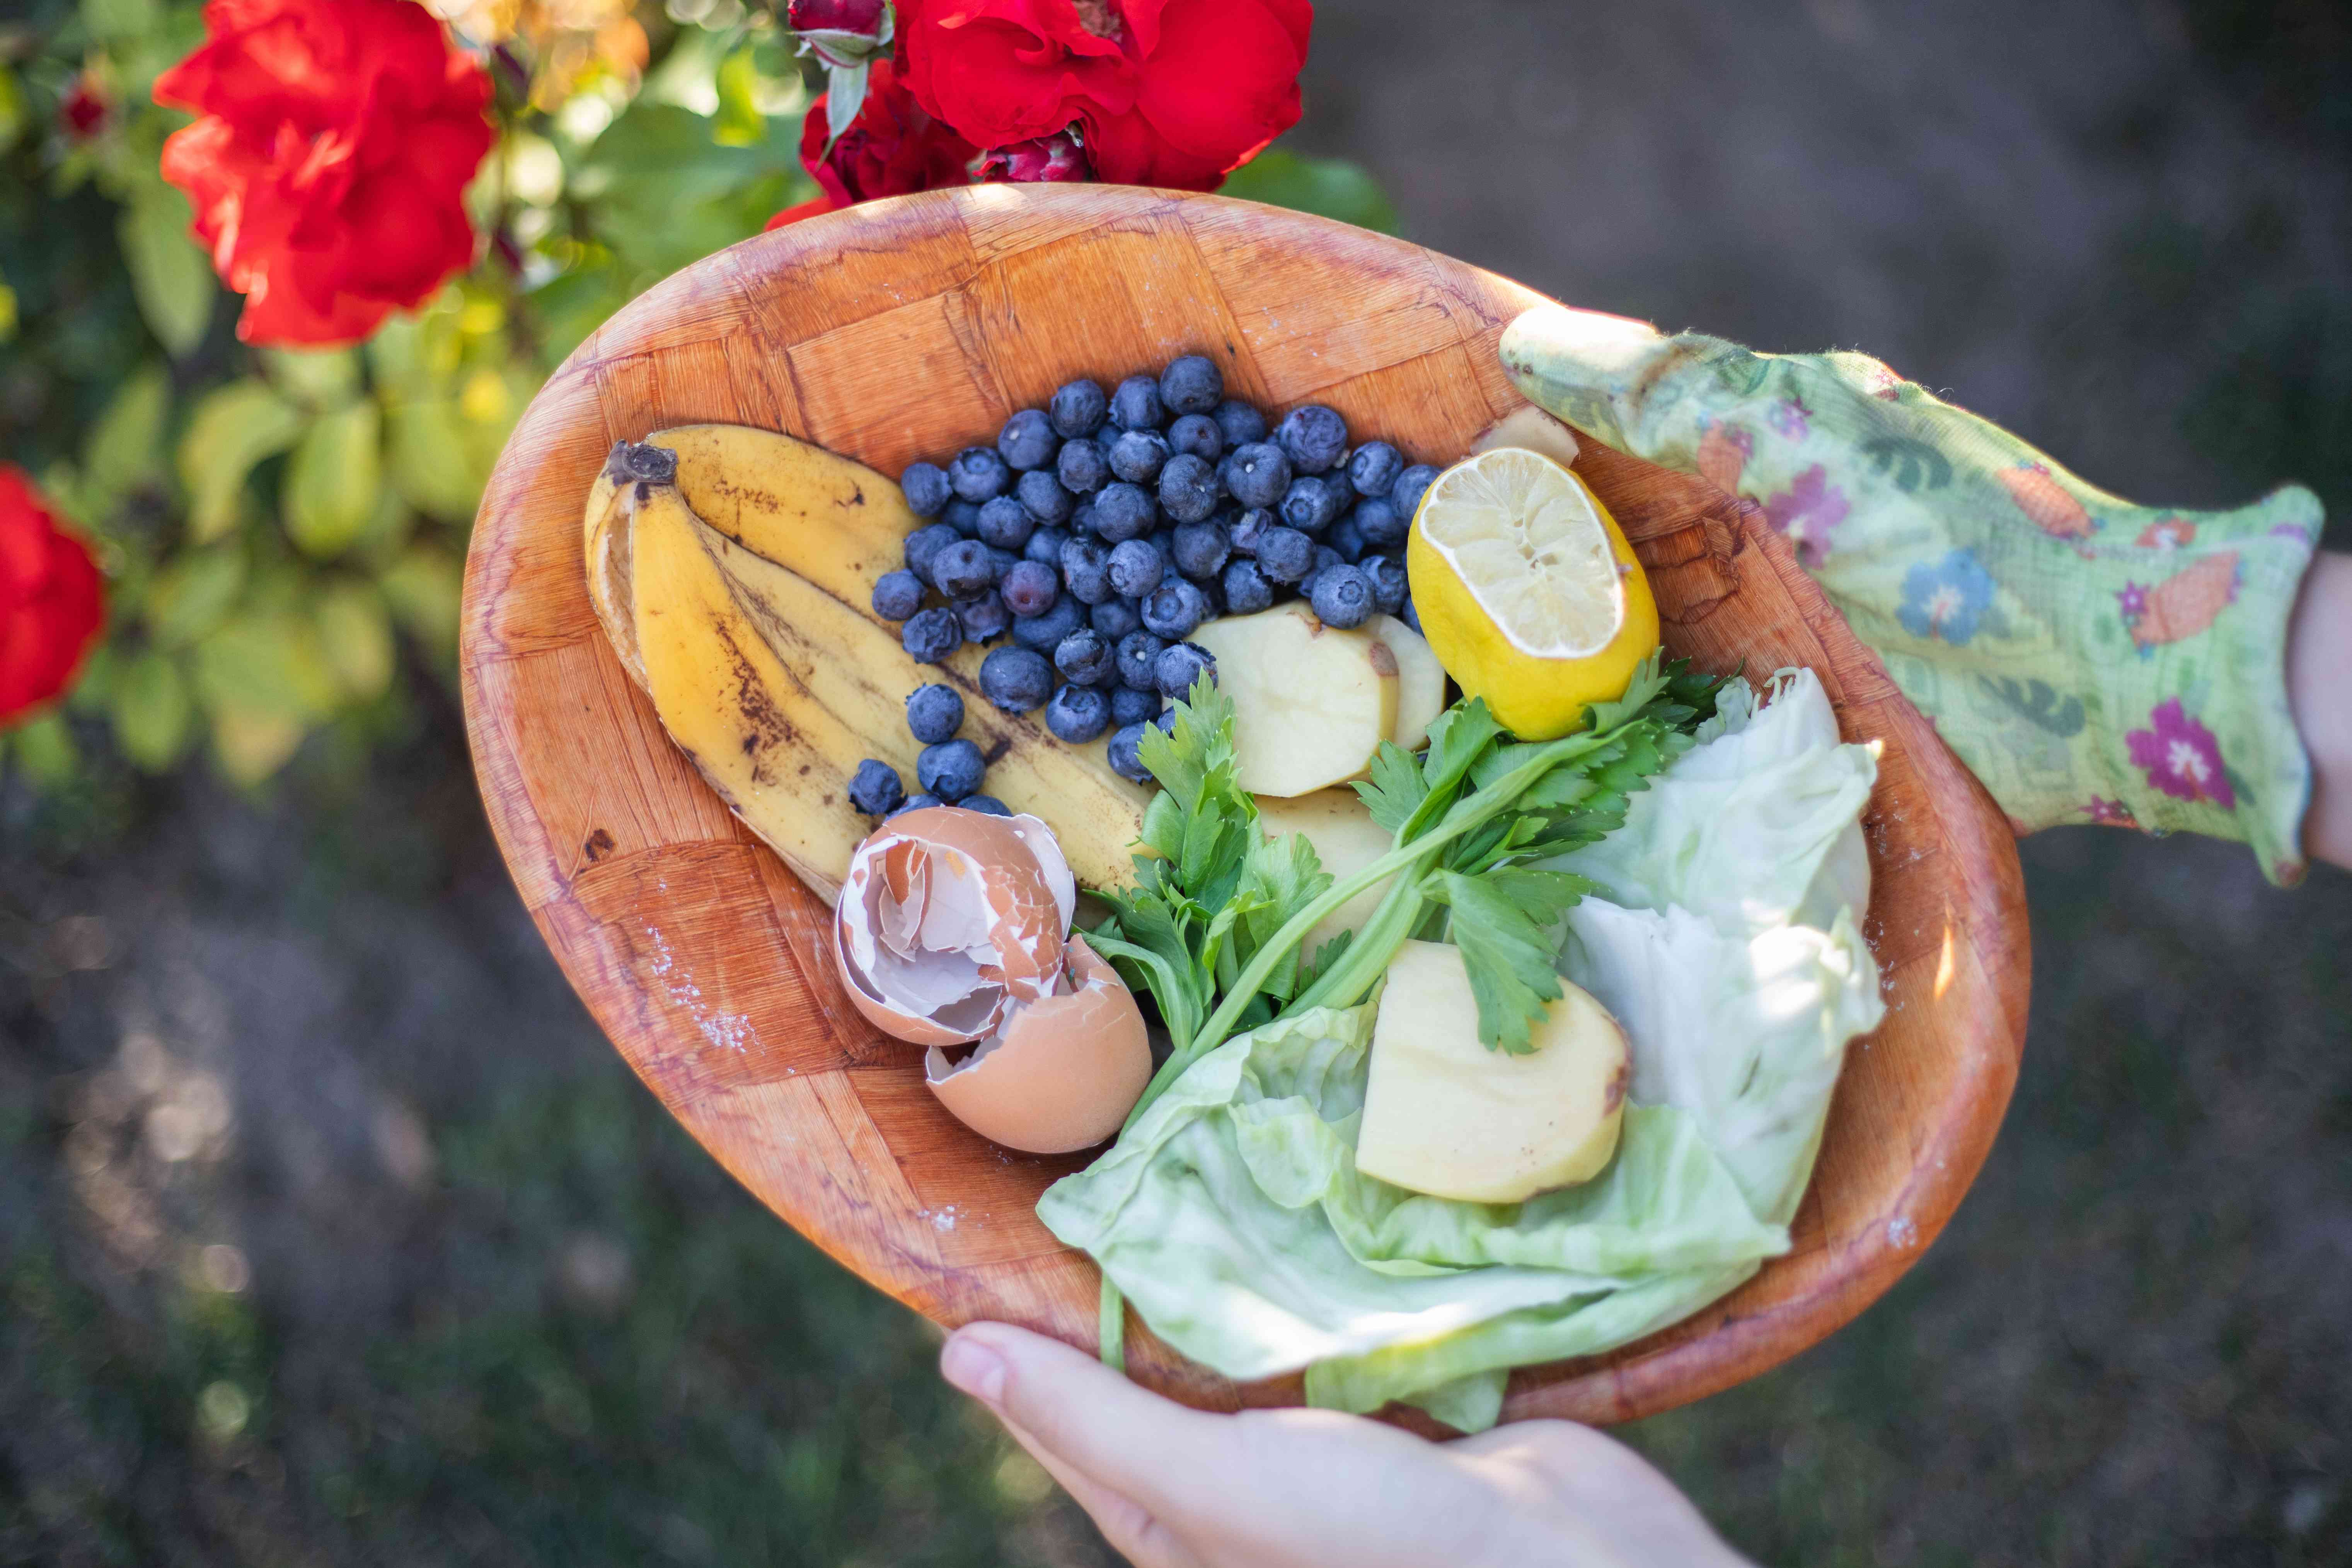 person carries wooden bowl full of food scraps outside to compost pile